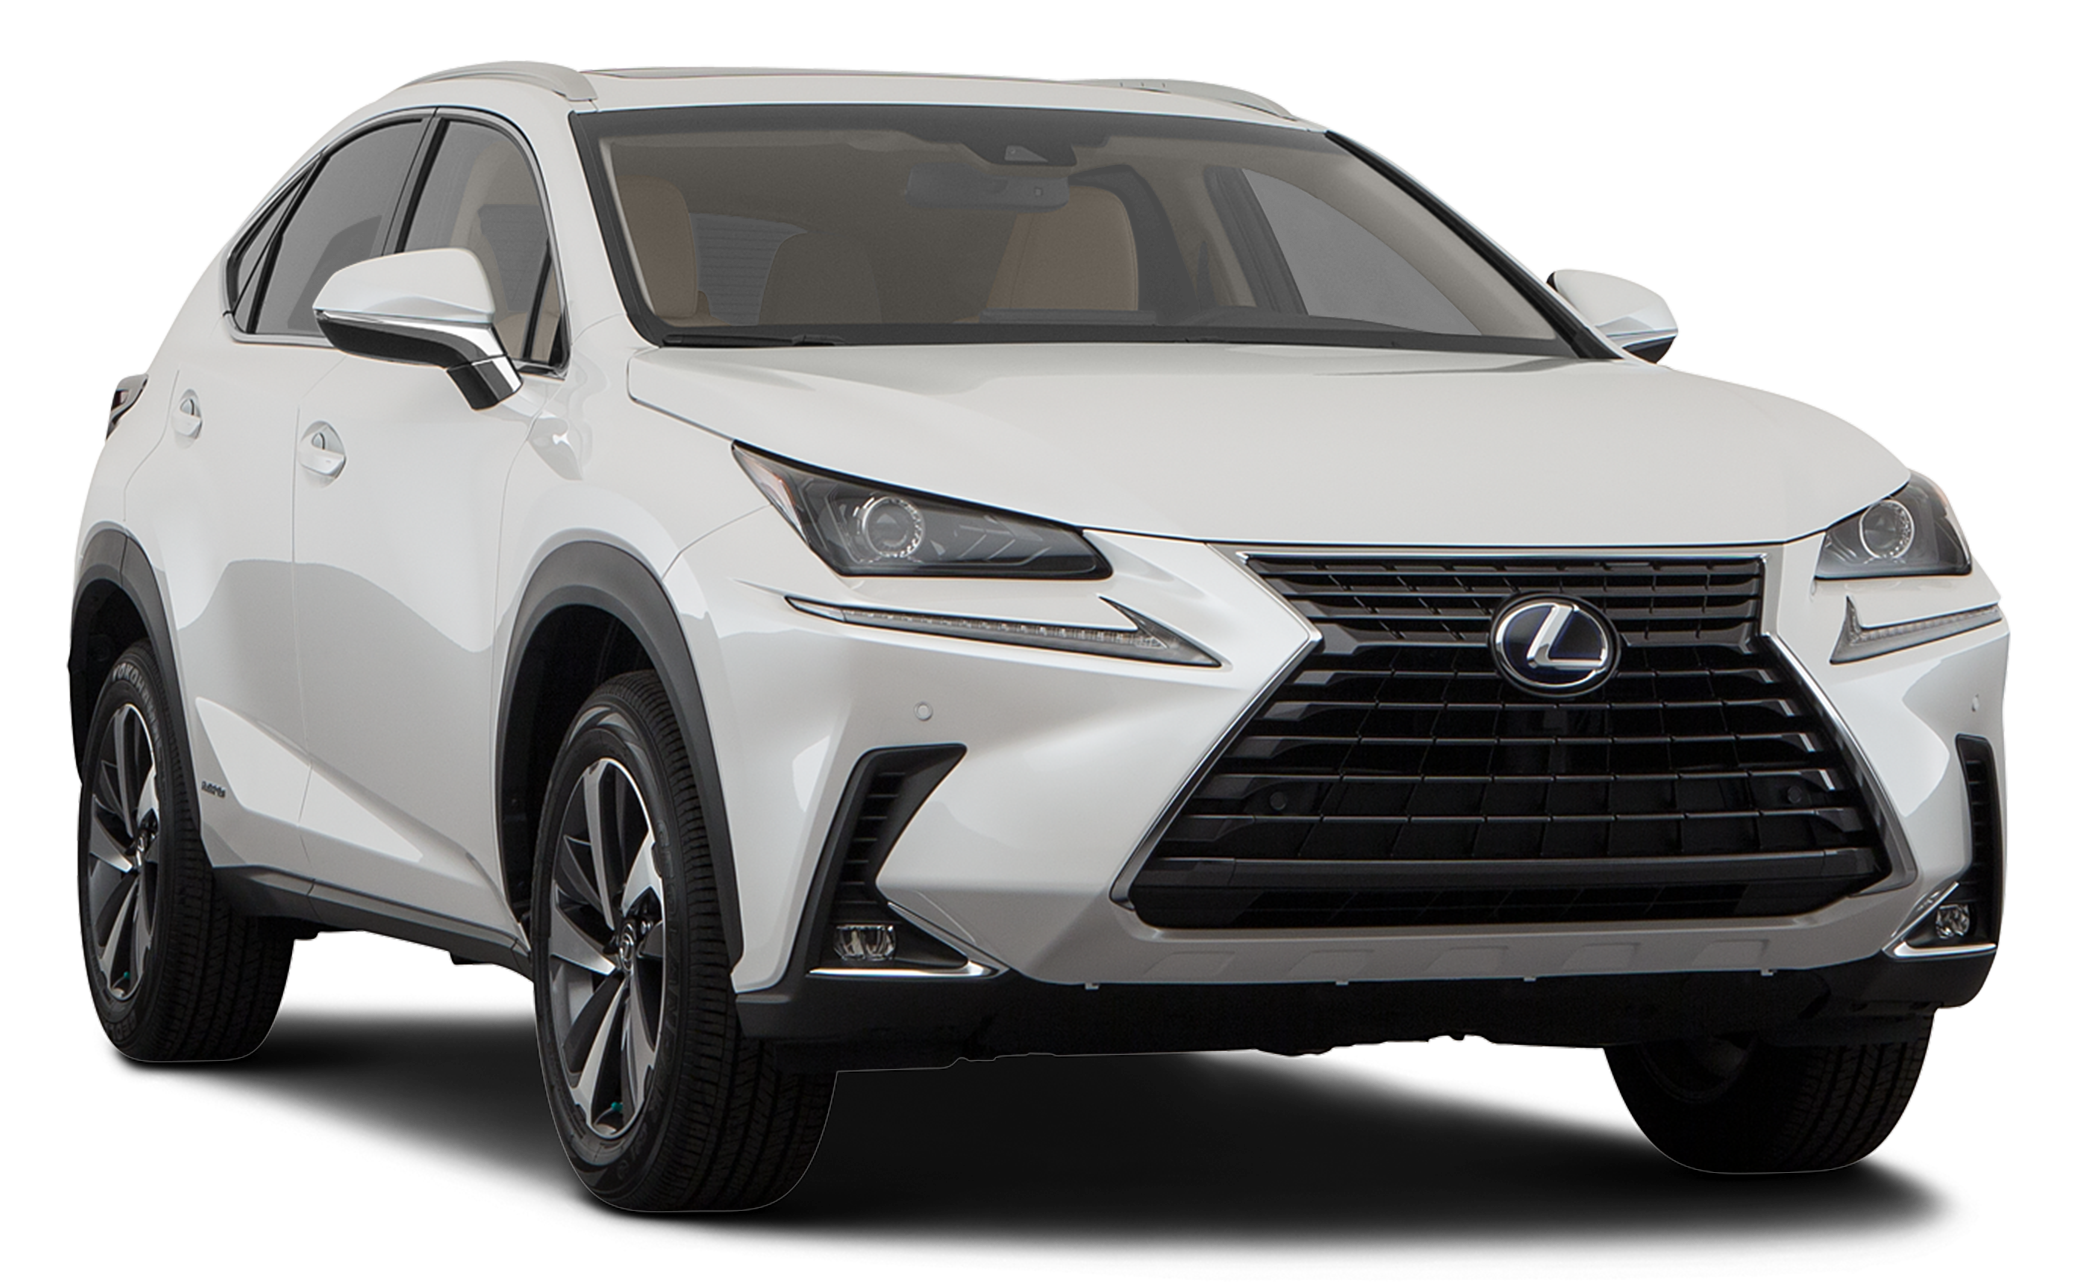 Jim Hudson Lexus Augusta | New Lexus Dealership In Augusta, GA 30907